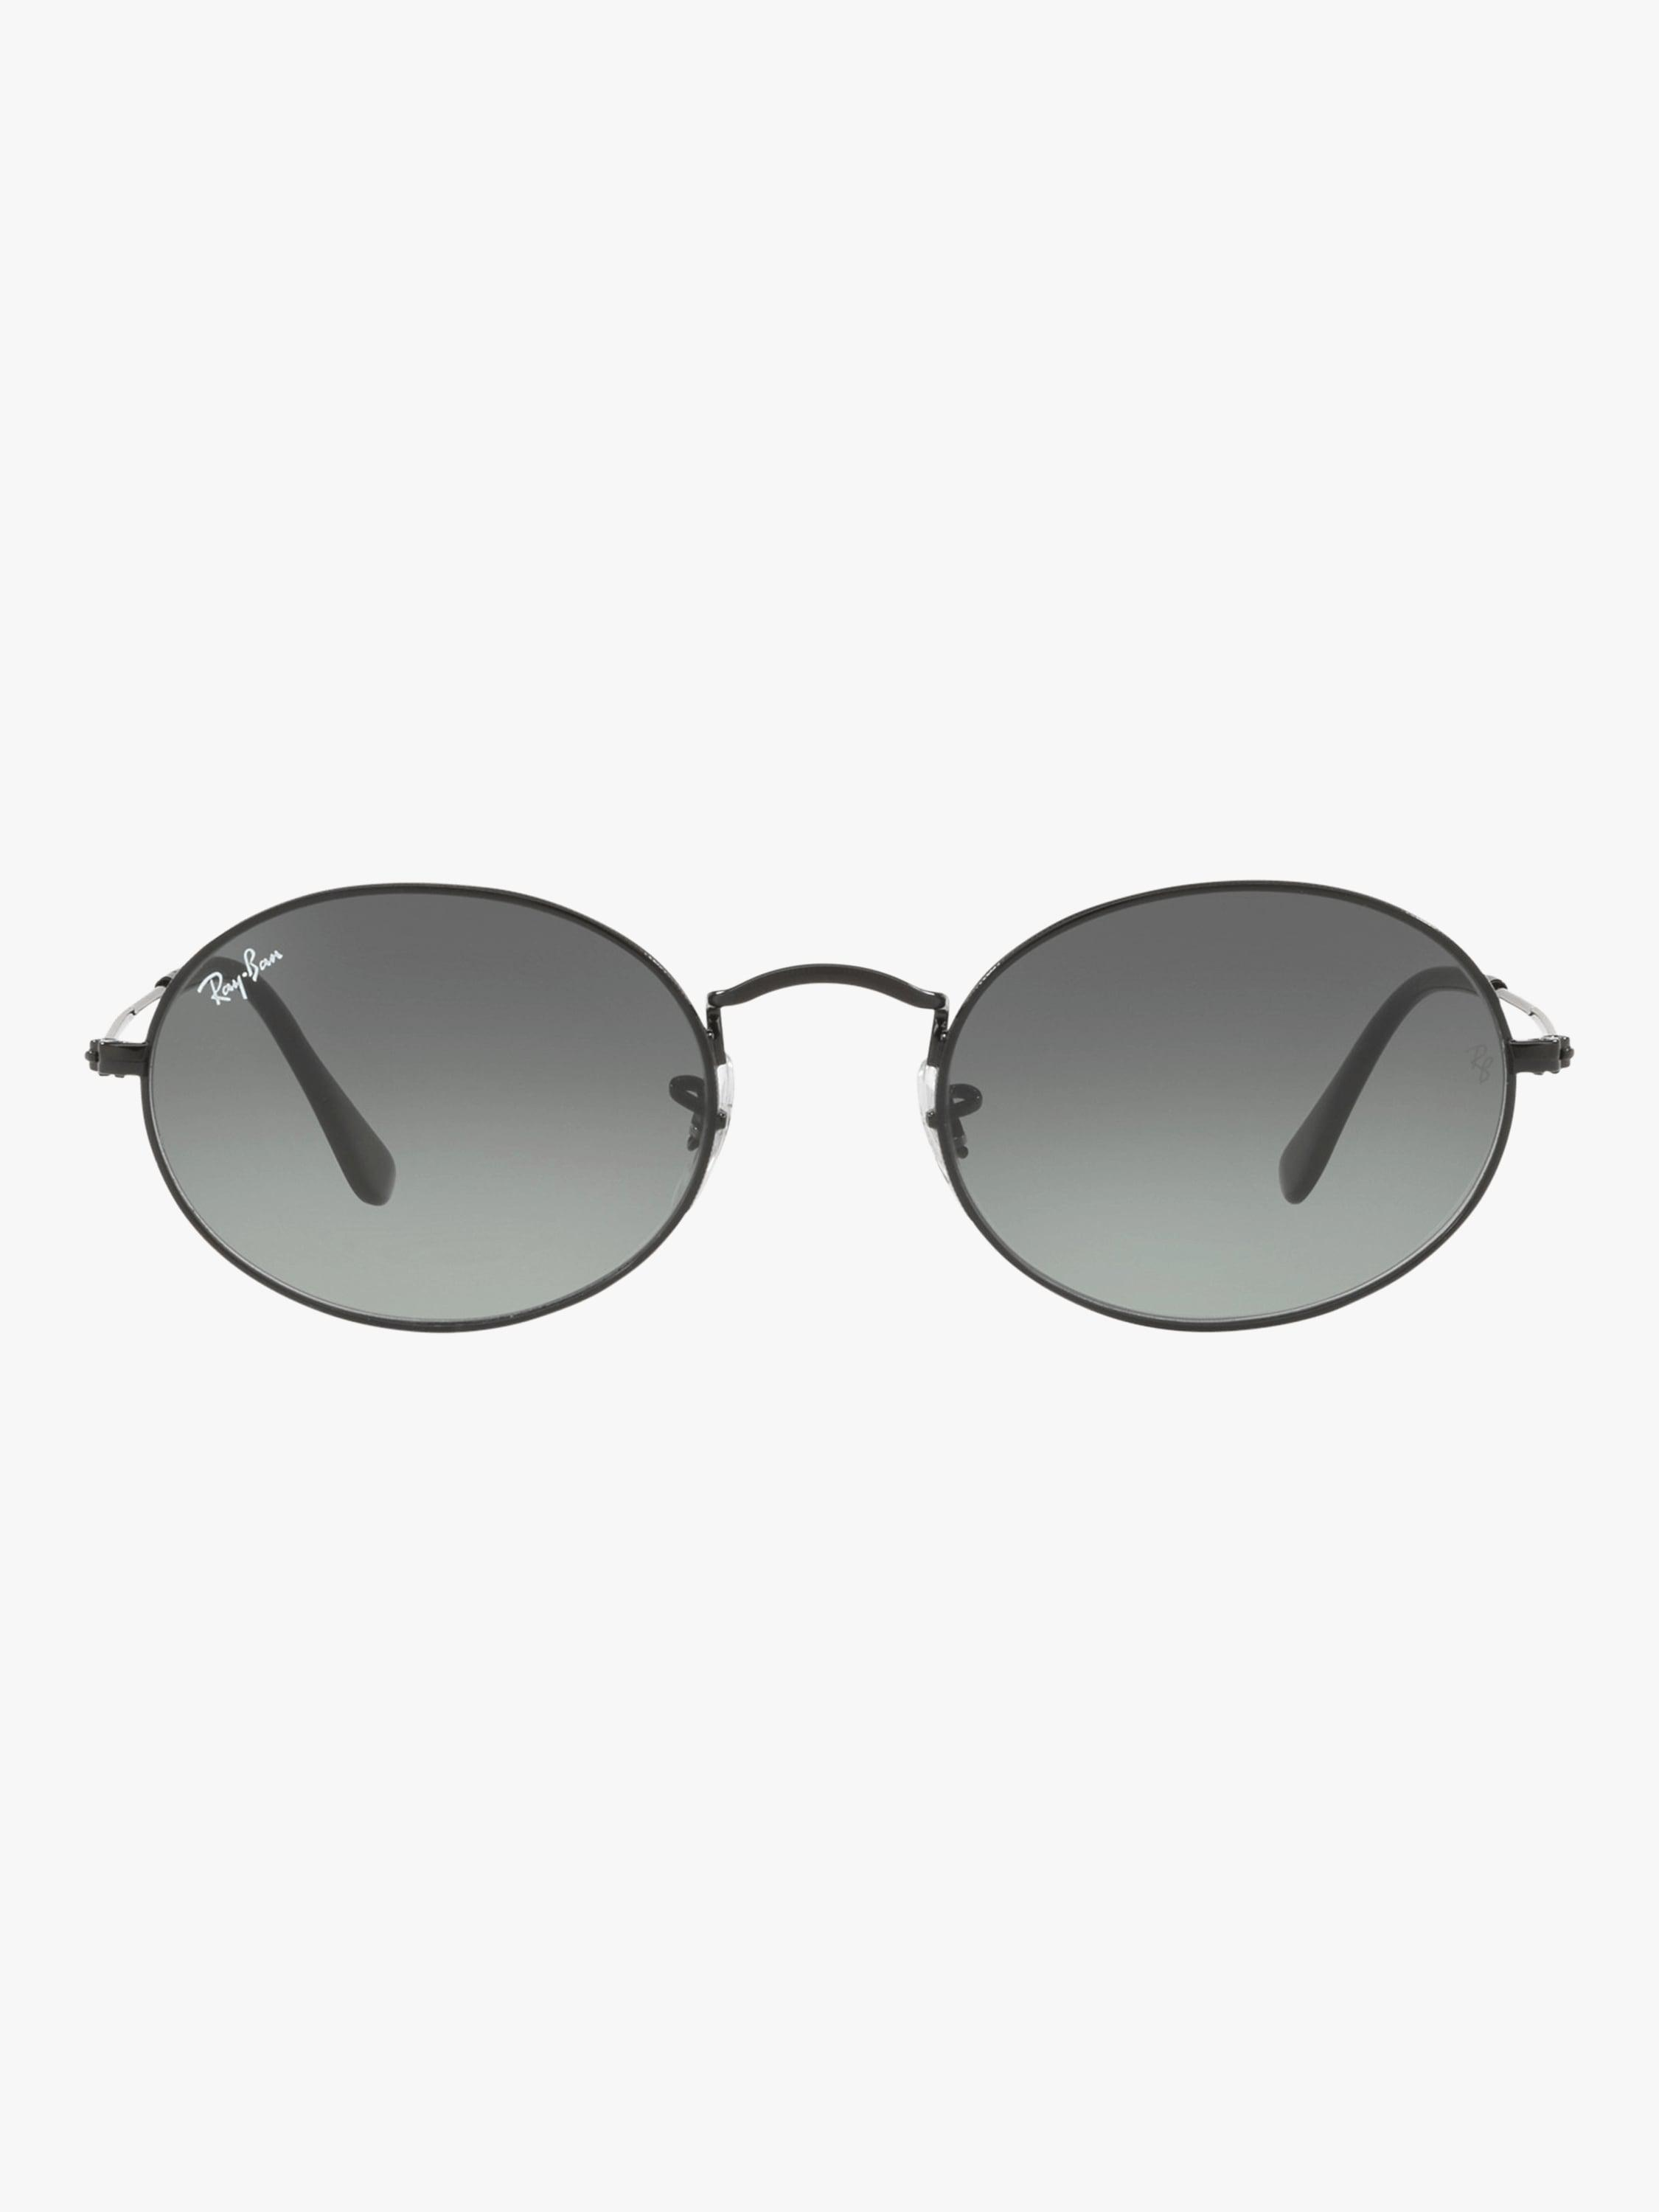 0c9ca774b95 Lyst - Ray-Ban Oval Flat Lenses in Gray